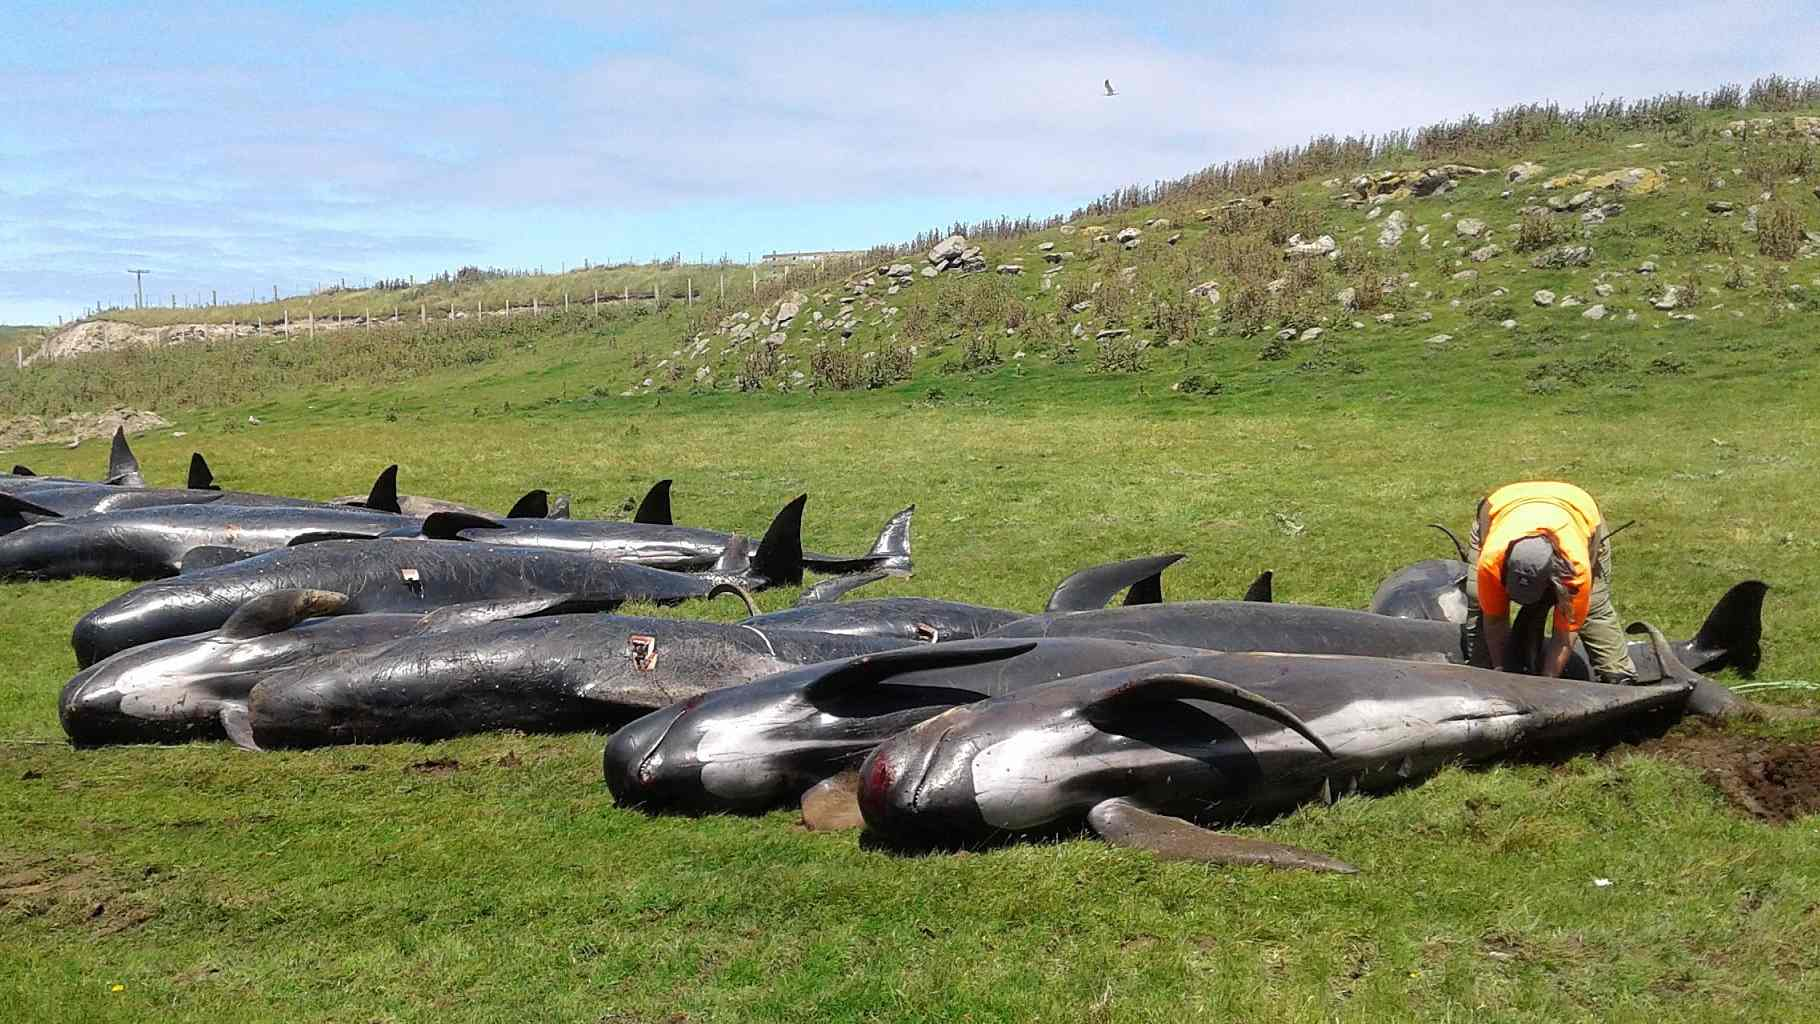 Whales found stranded on rocks in New Zealand